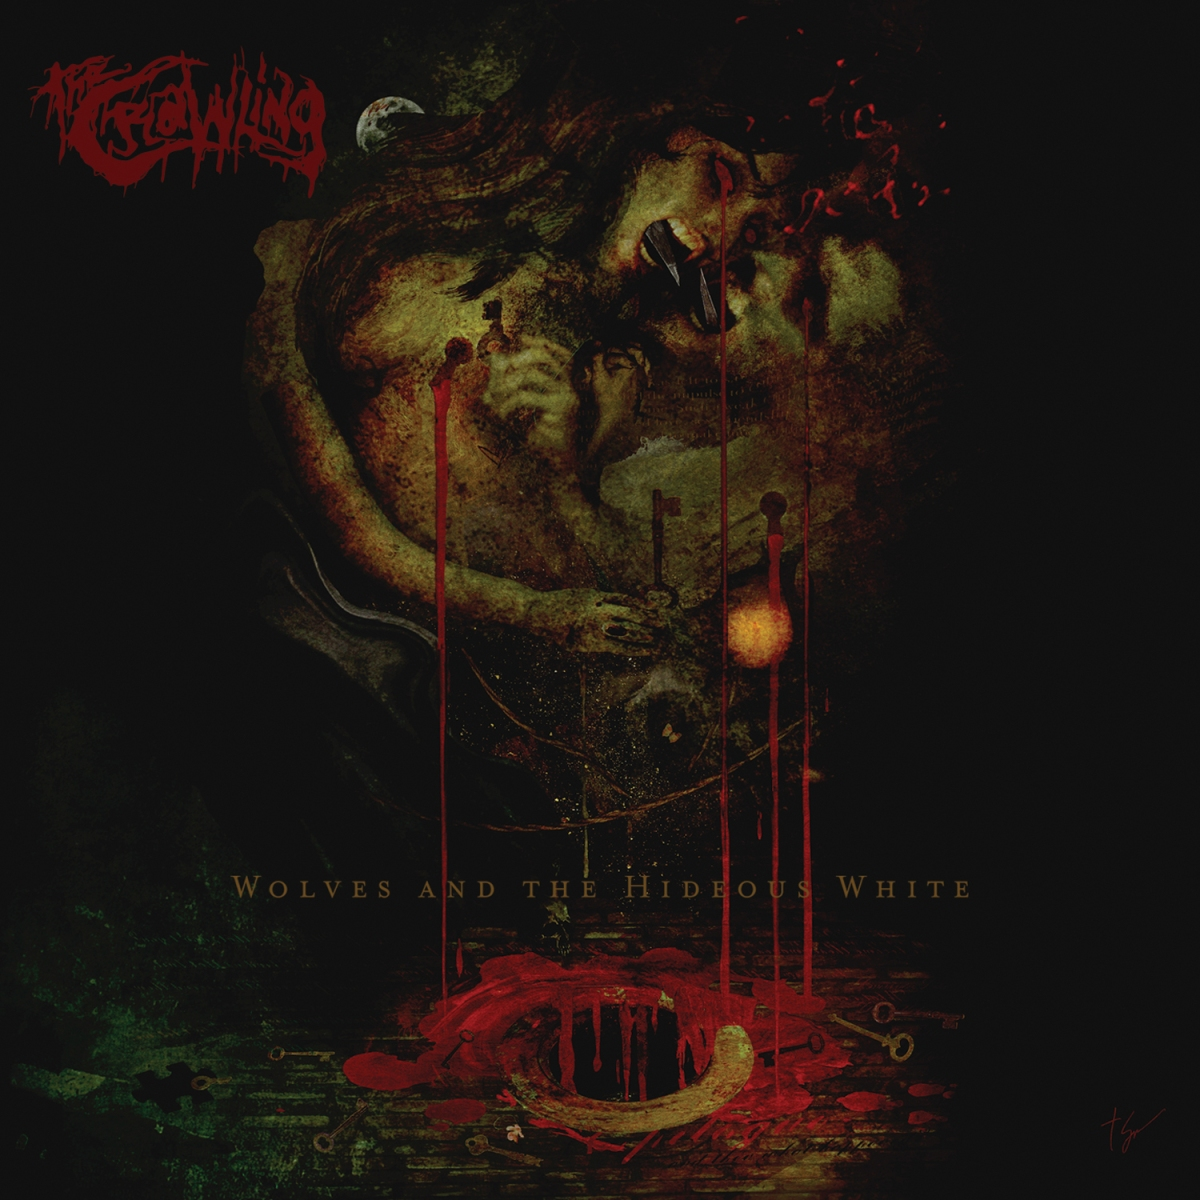 Album Review: Wolves and the Hideous White - The Crawling